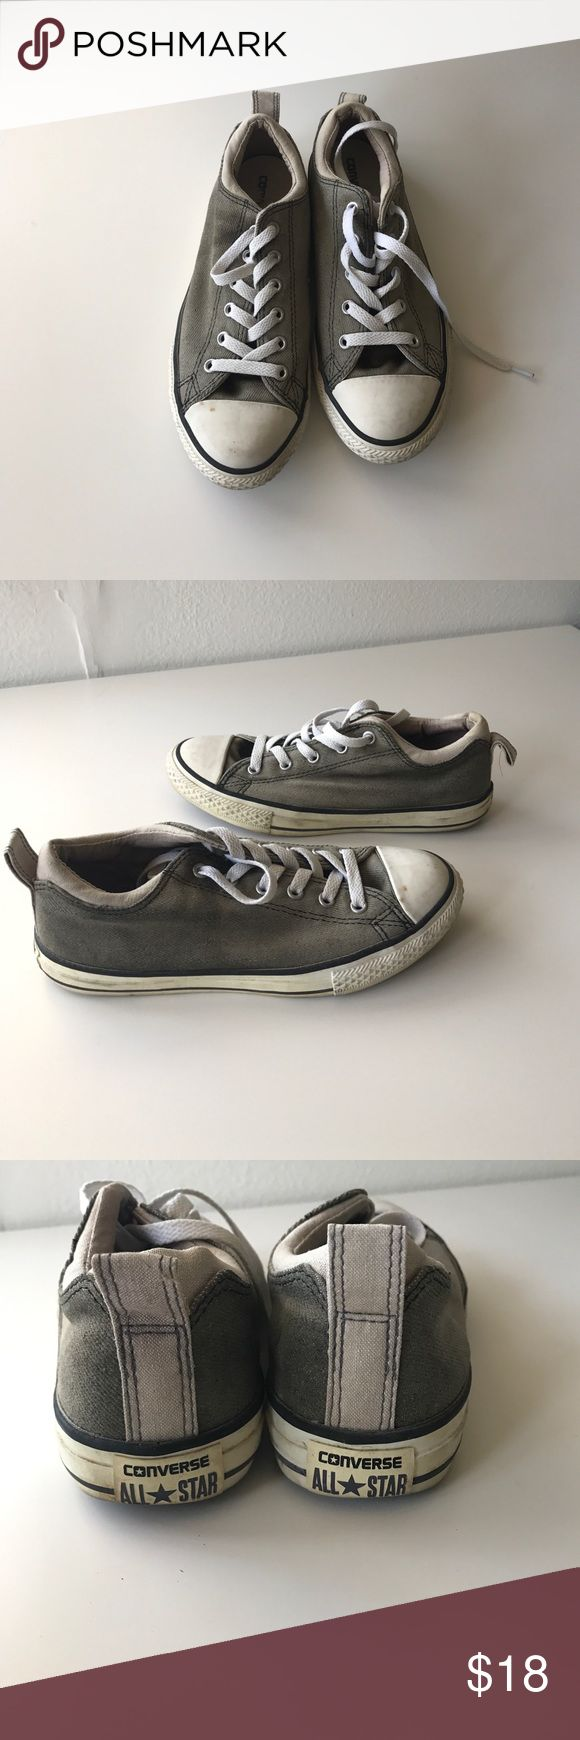 Converse shoes PRICE FIRM UNLESS Bundled. 10% off bundles. Normal wear and tear. Grayish with brown undertones. Distressed look. A lot of life left in them still in great condition. 1005 Converse Shoes Sneakers